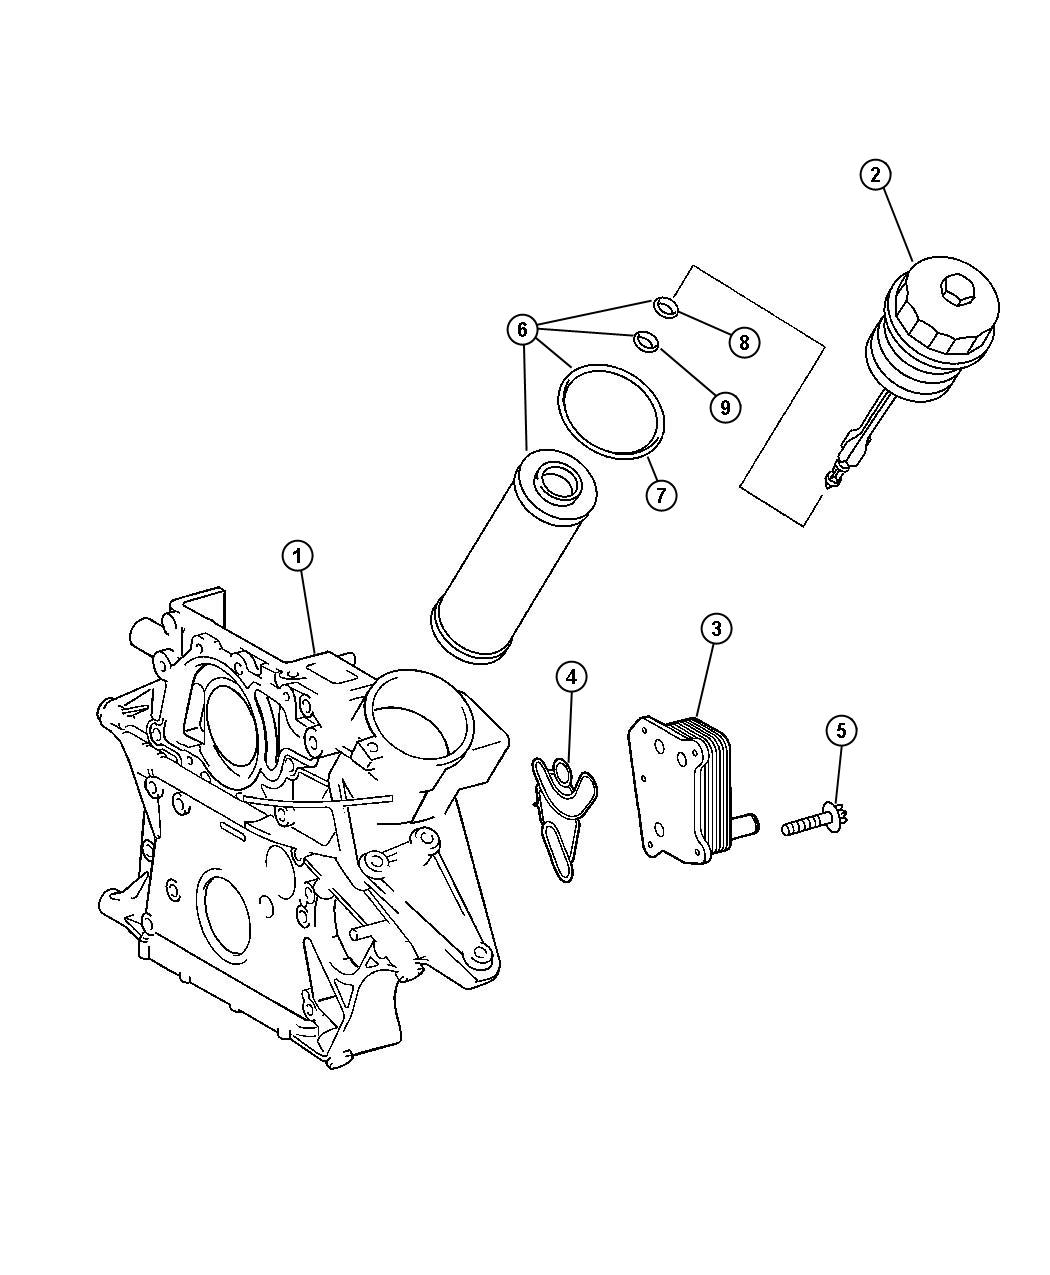 Gm I5 Engine Gm Free Engine Image For User Manual Download